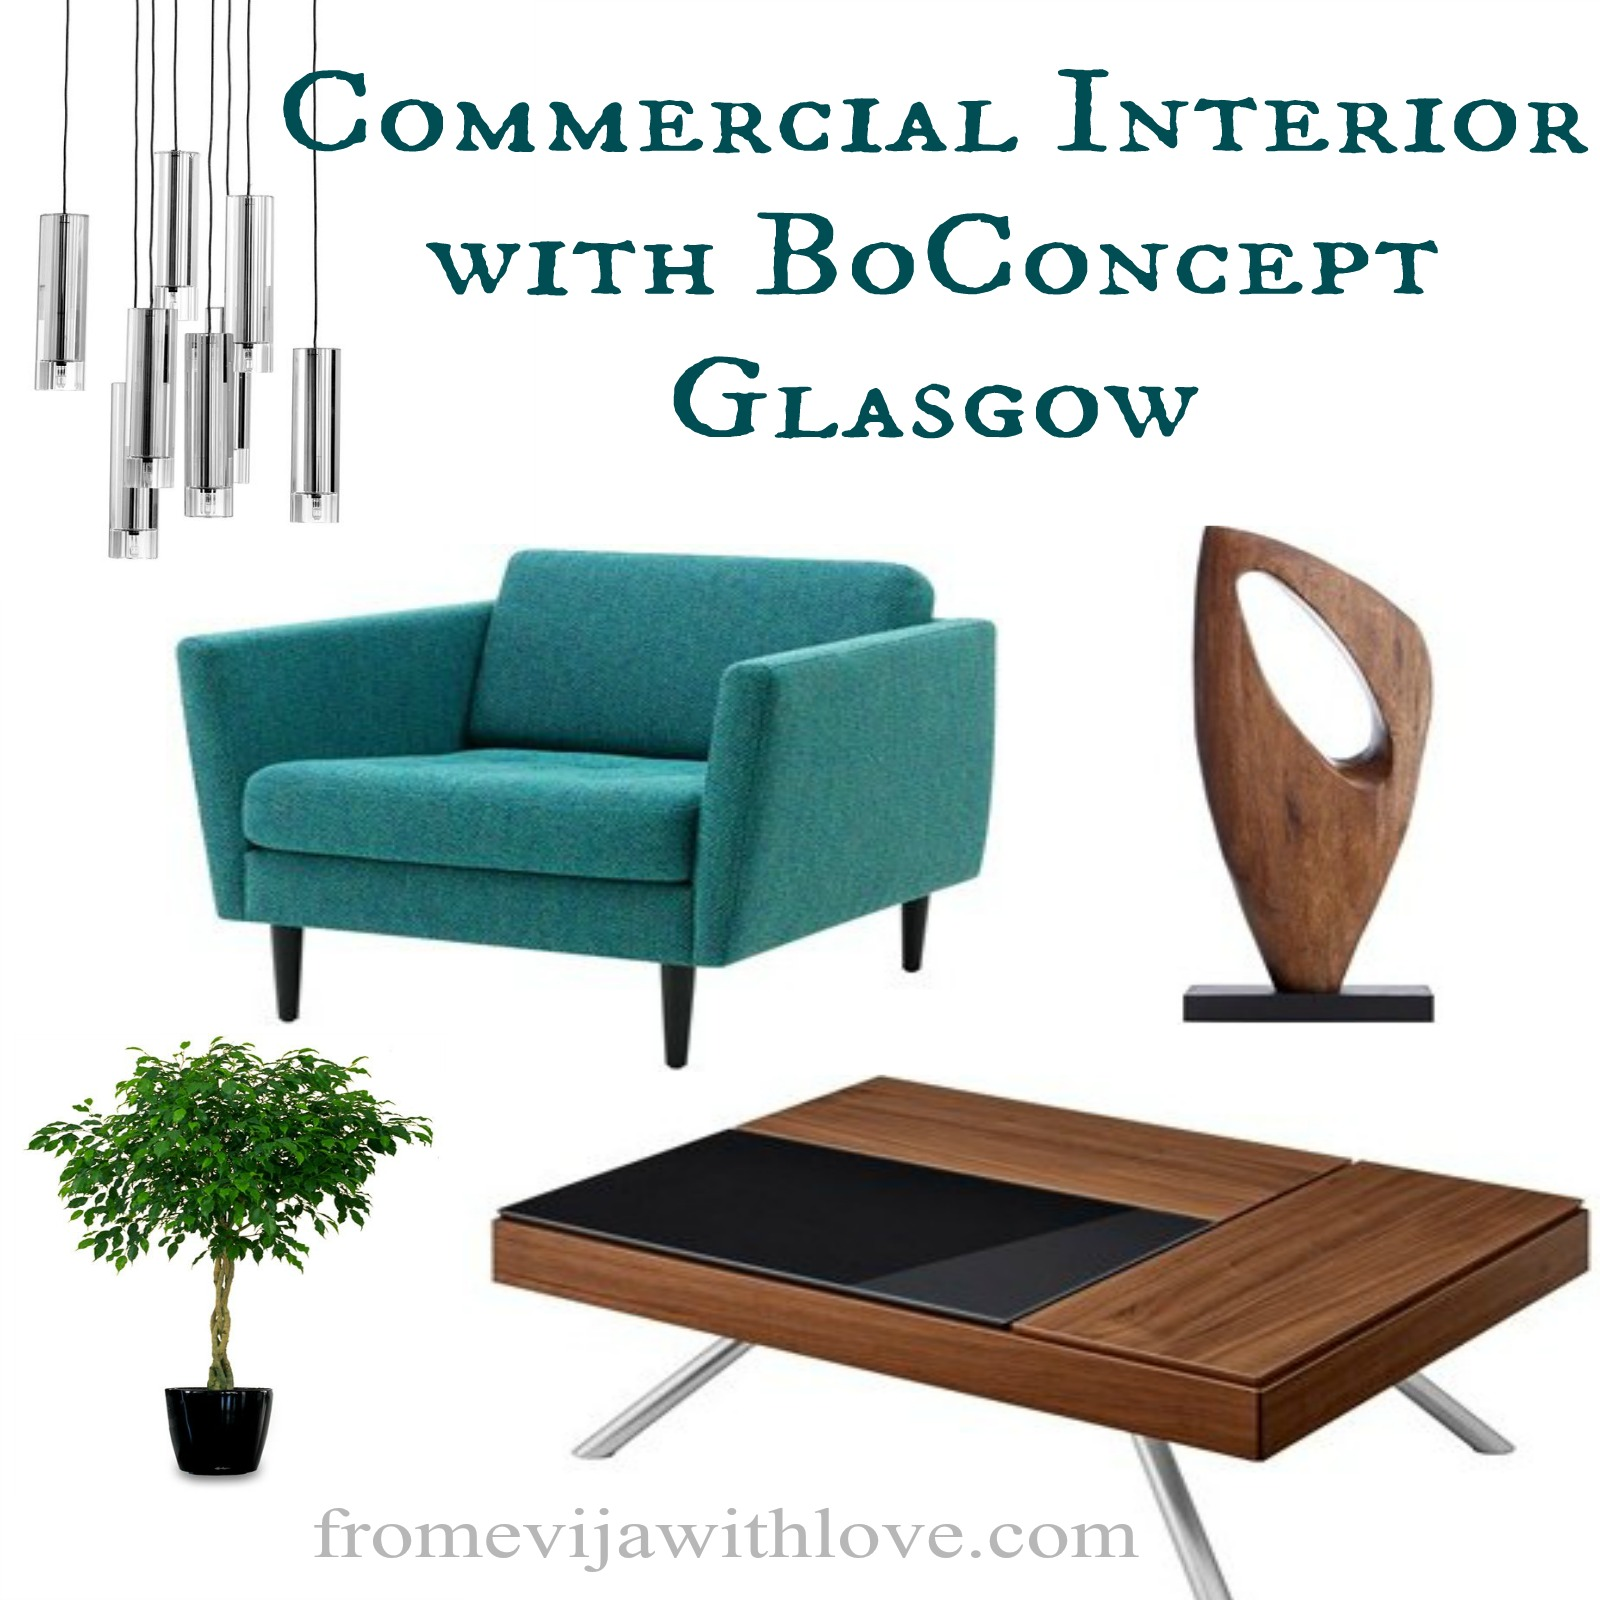 boconcept meubles good the best boconcept ideas on pinterest bo concept morden living room and. Black Bedroom Furniture Sets. Home Design Ideas